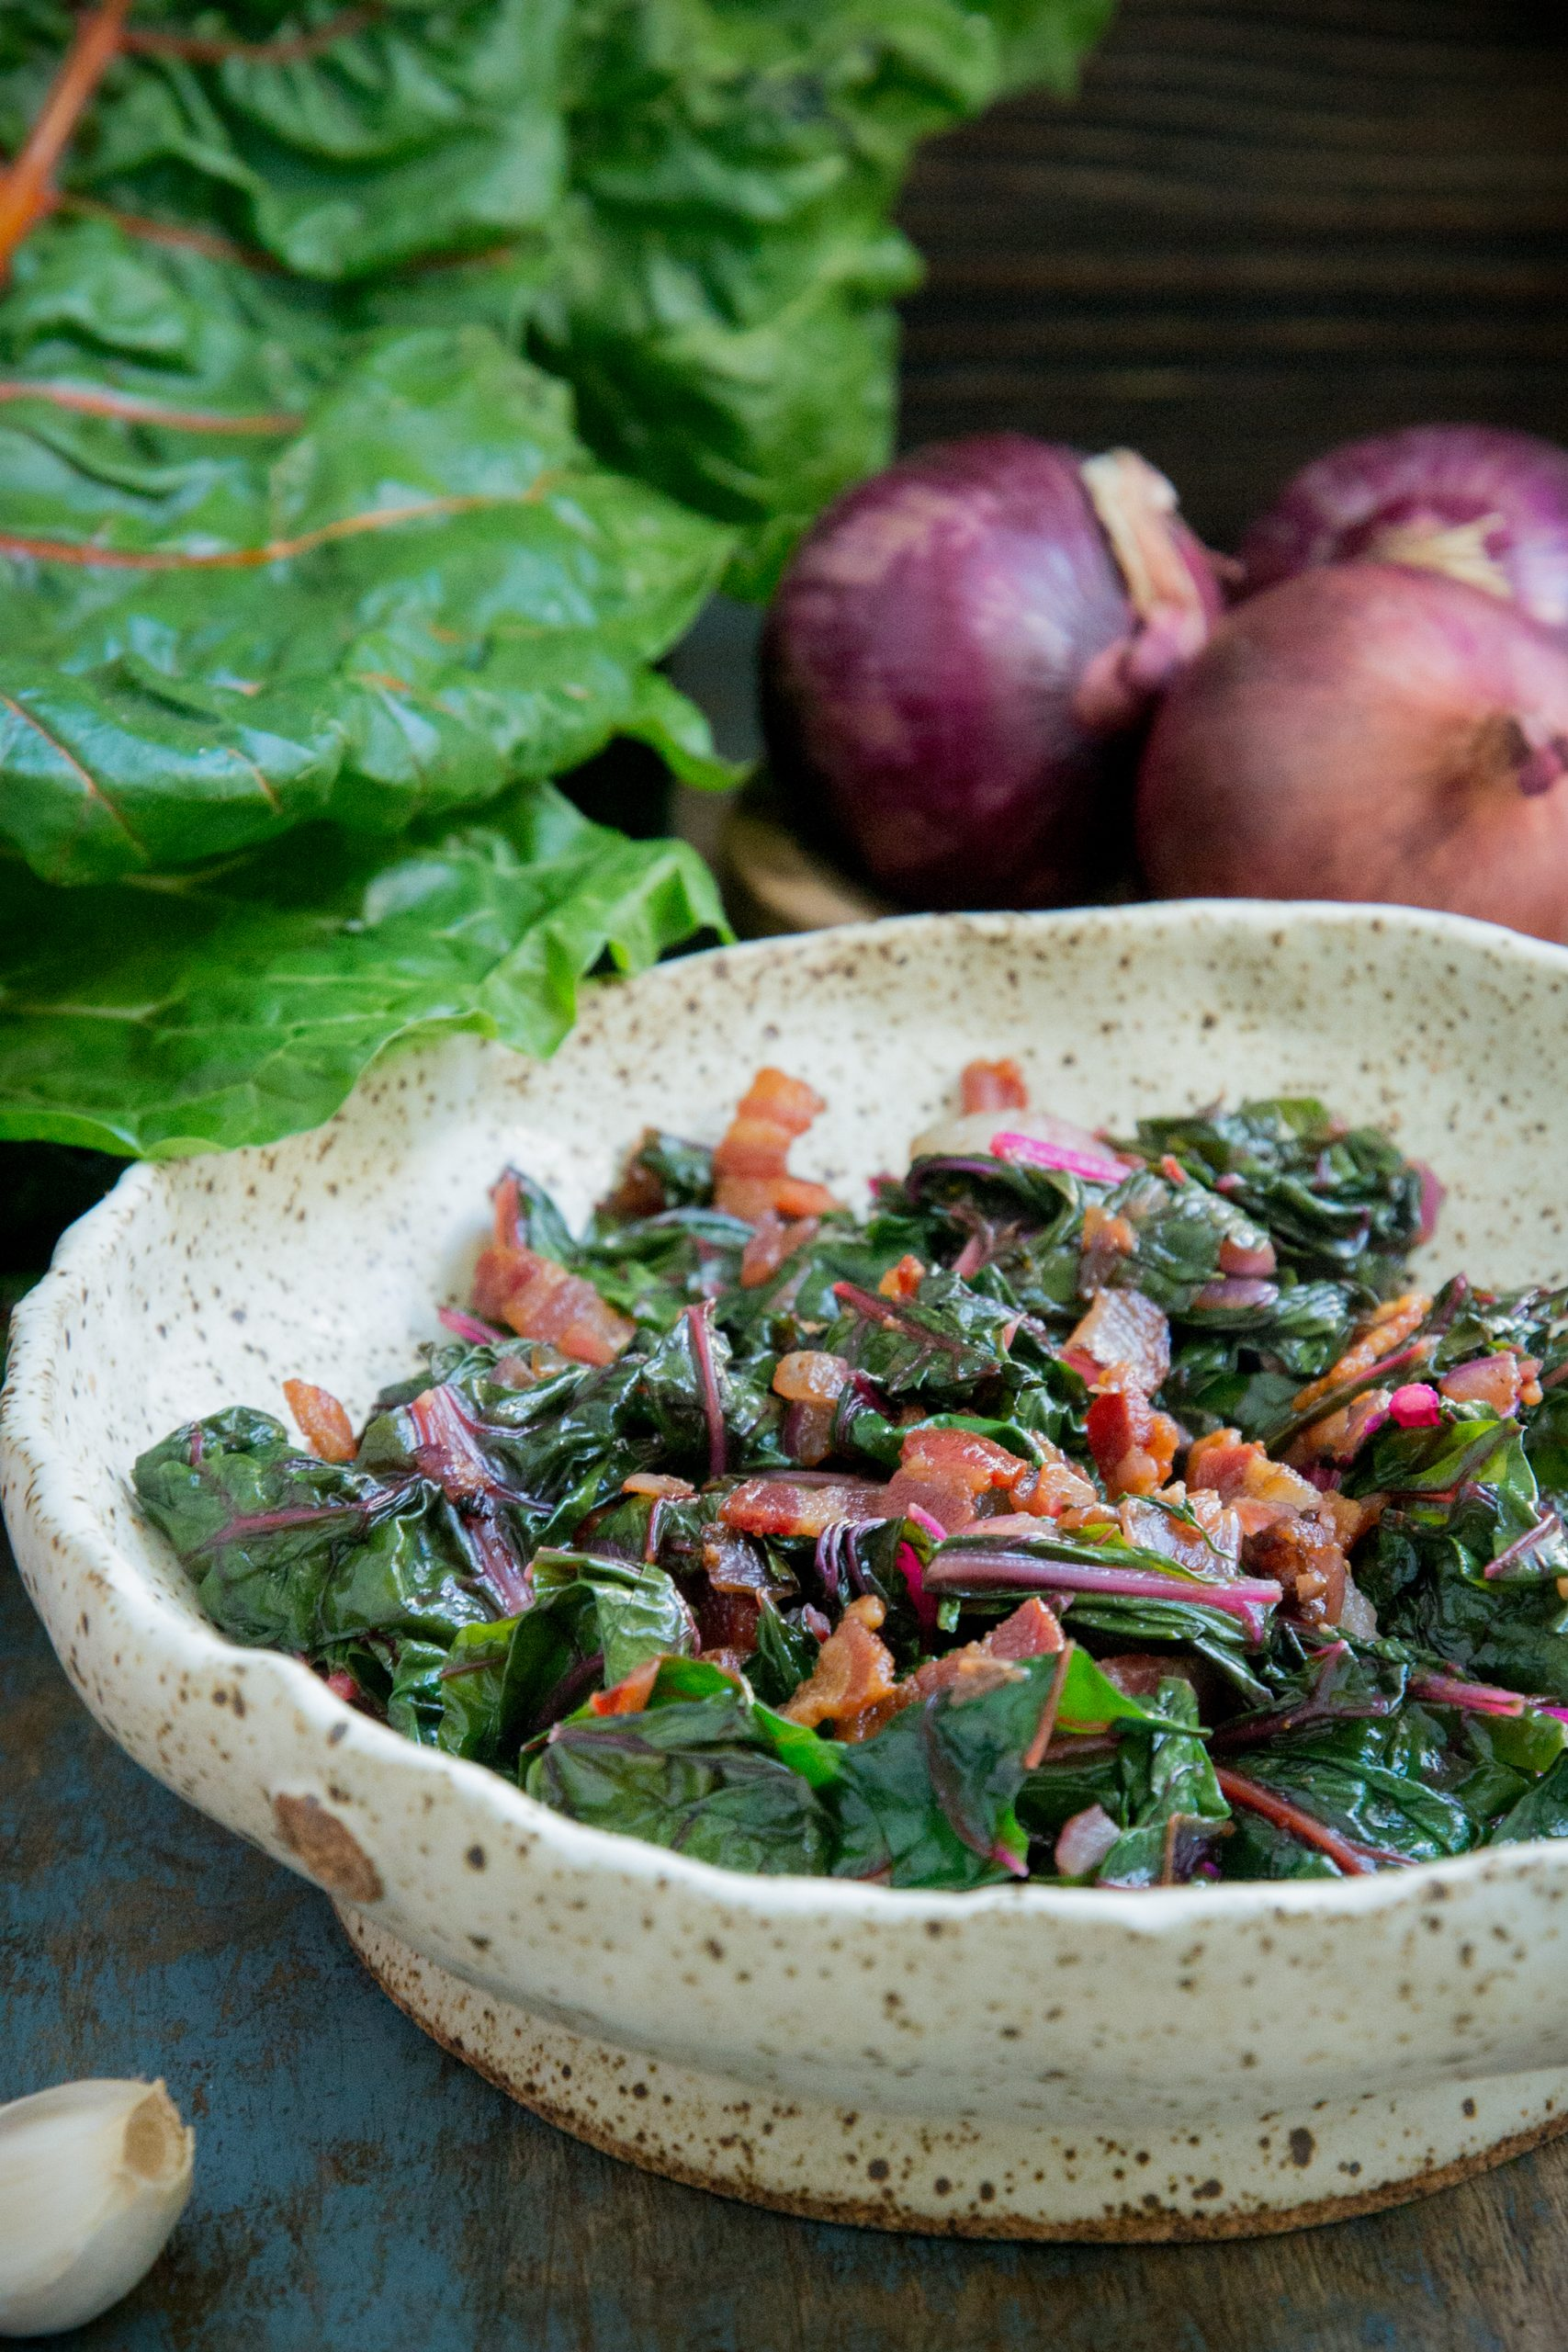 Wilted Swiss Chard in a serving bowl.